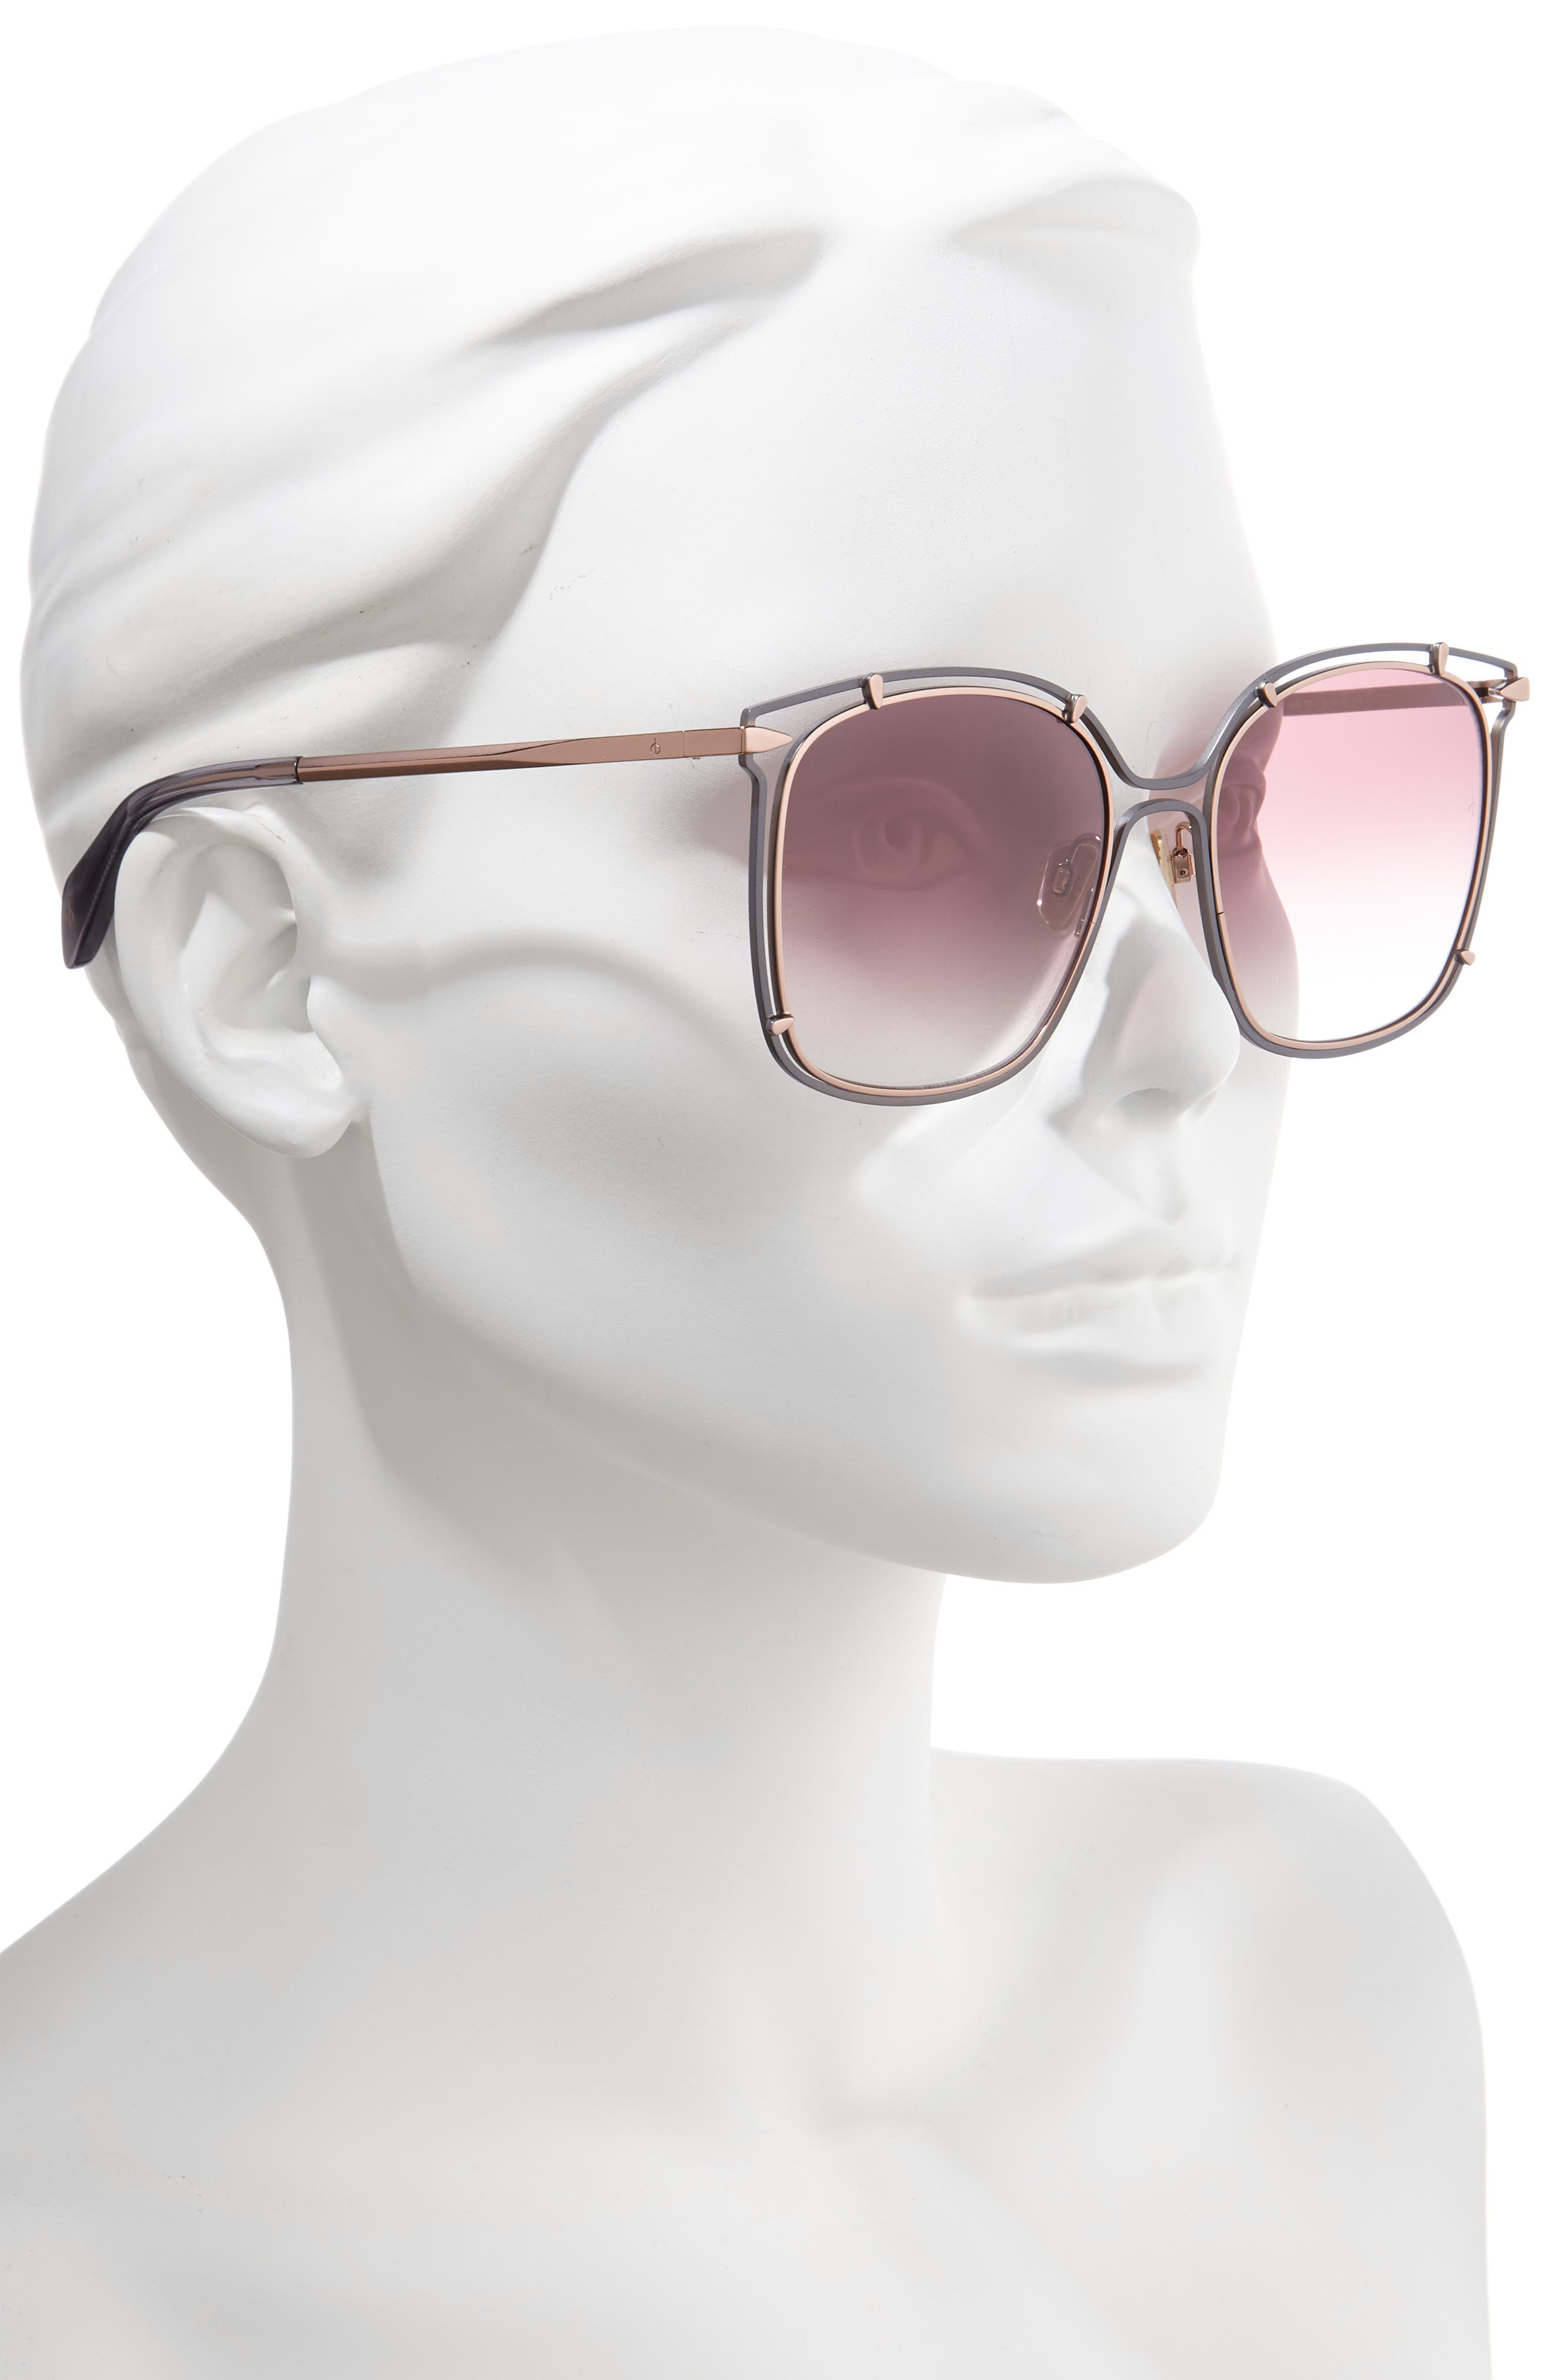 RAG & BONE,                             56mm Gradient Square Sunglasses,                             Alternate thumbnail 2, color,                             GREY/ PINK/ GOLD